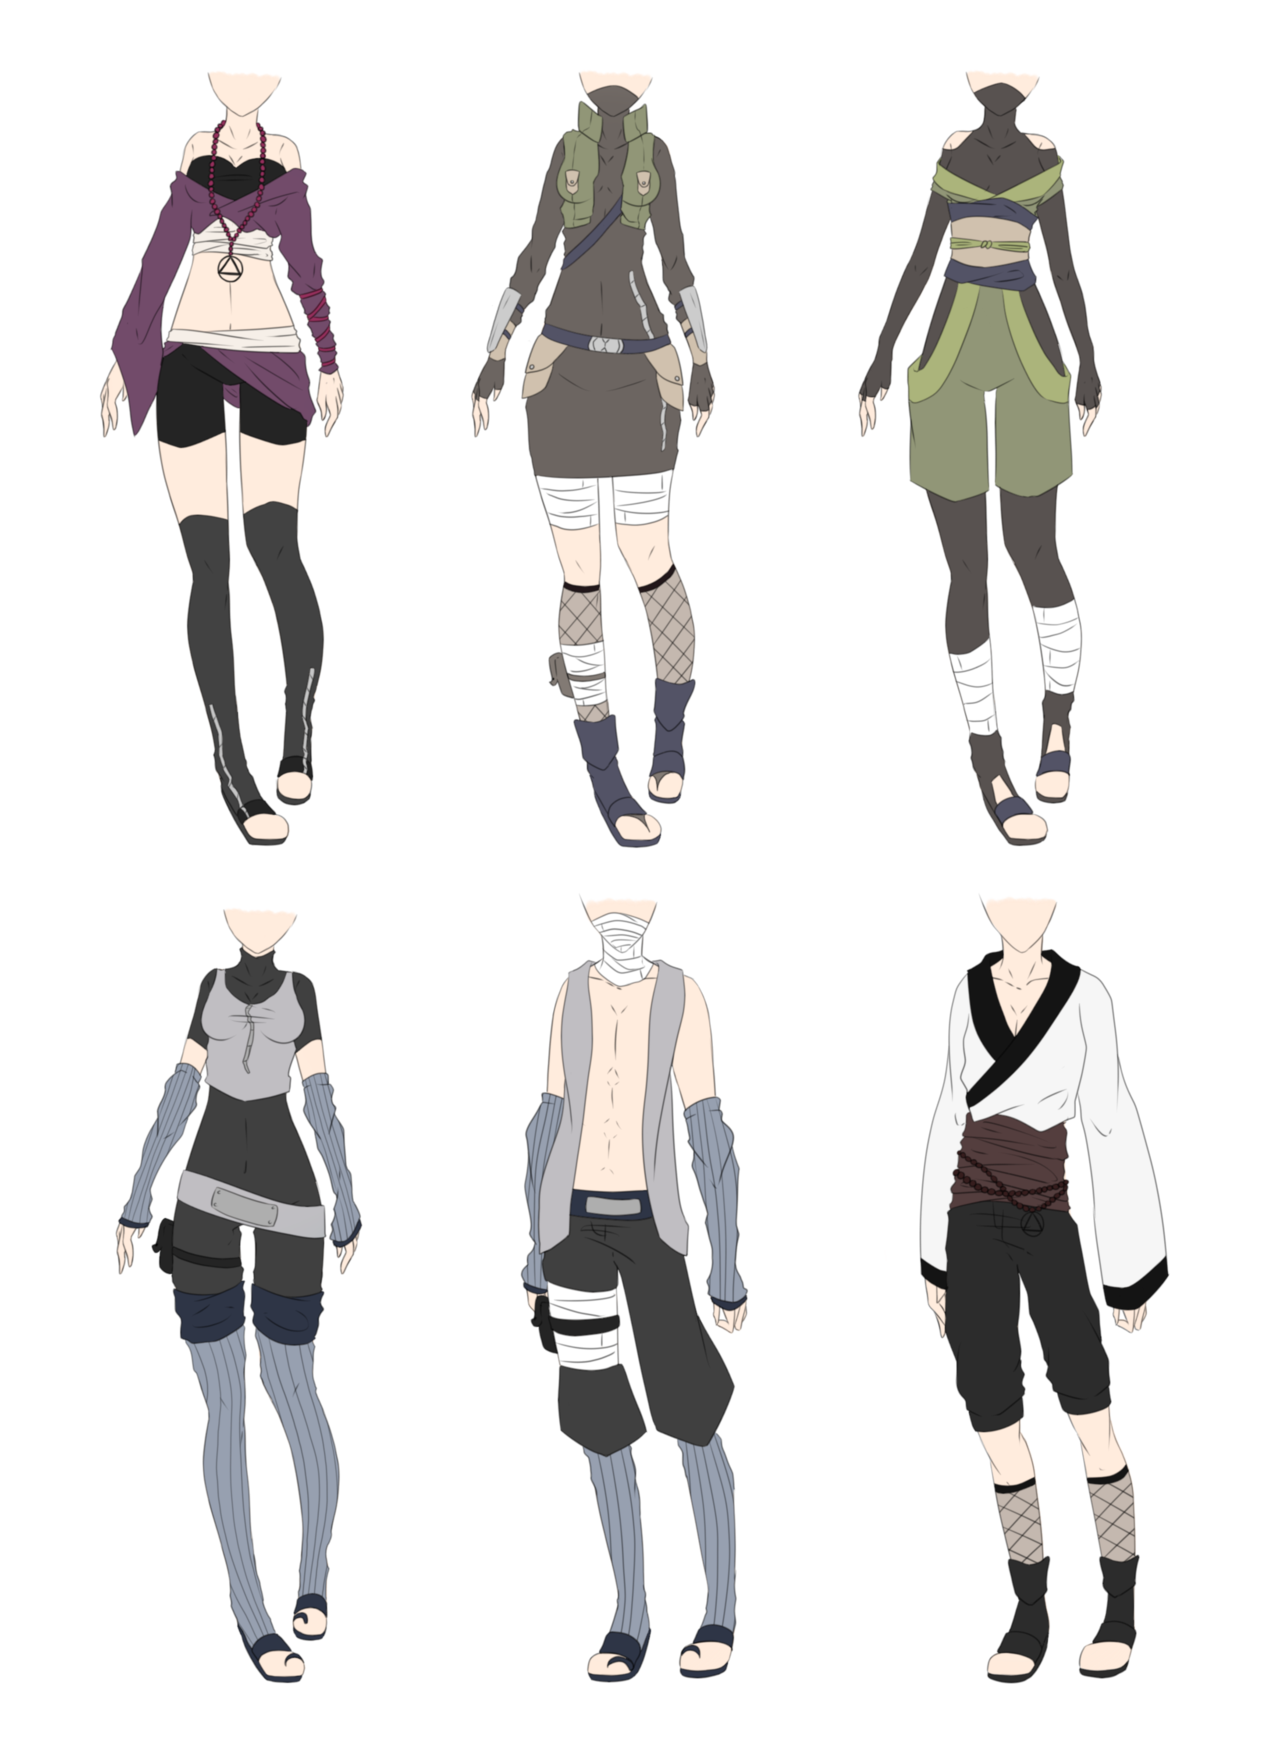 Deviantart Character Design : Naruto outfit adoptables closed by xnoakix viantart